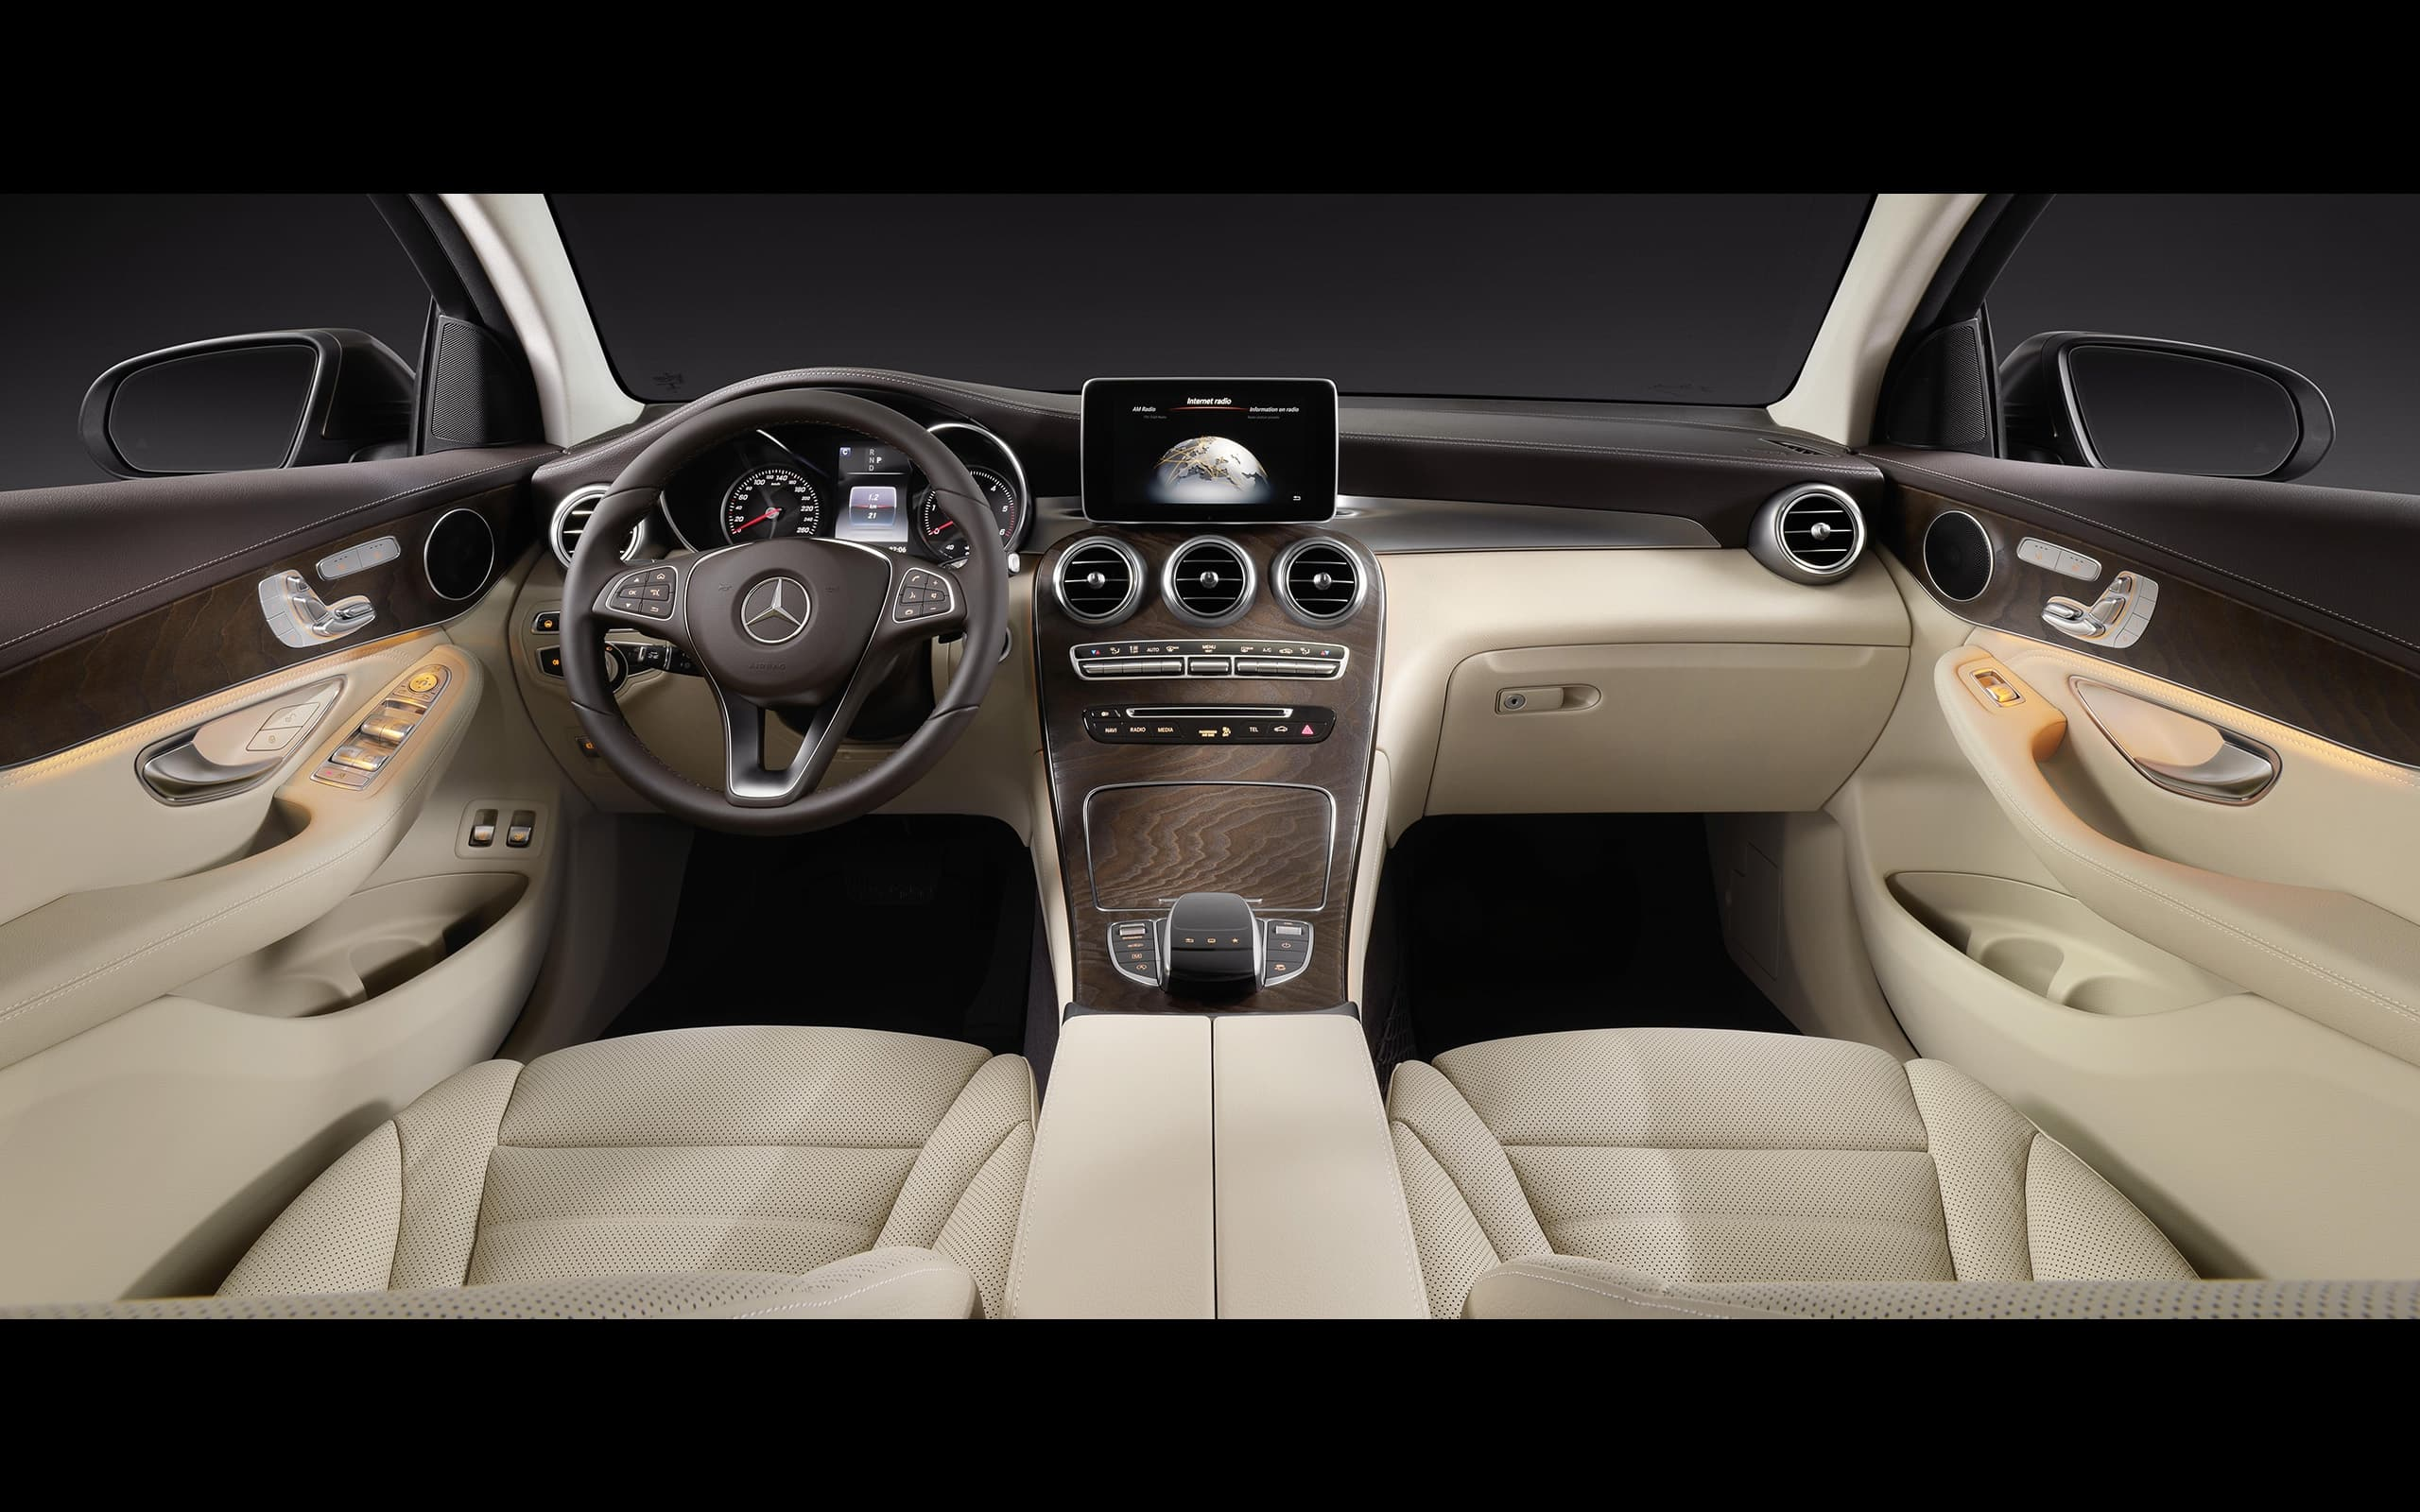 2016 Mercedes-Benz GLC Coupe interior Wallpapers HD